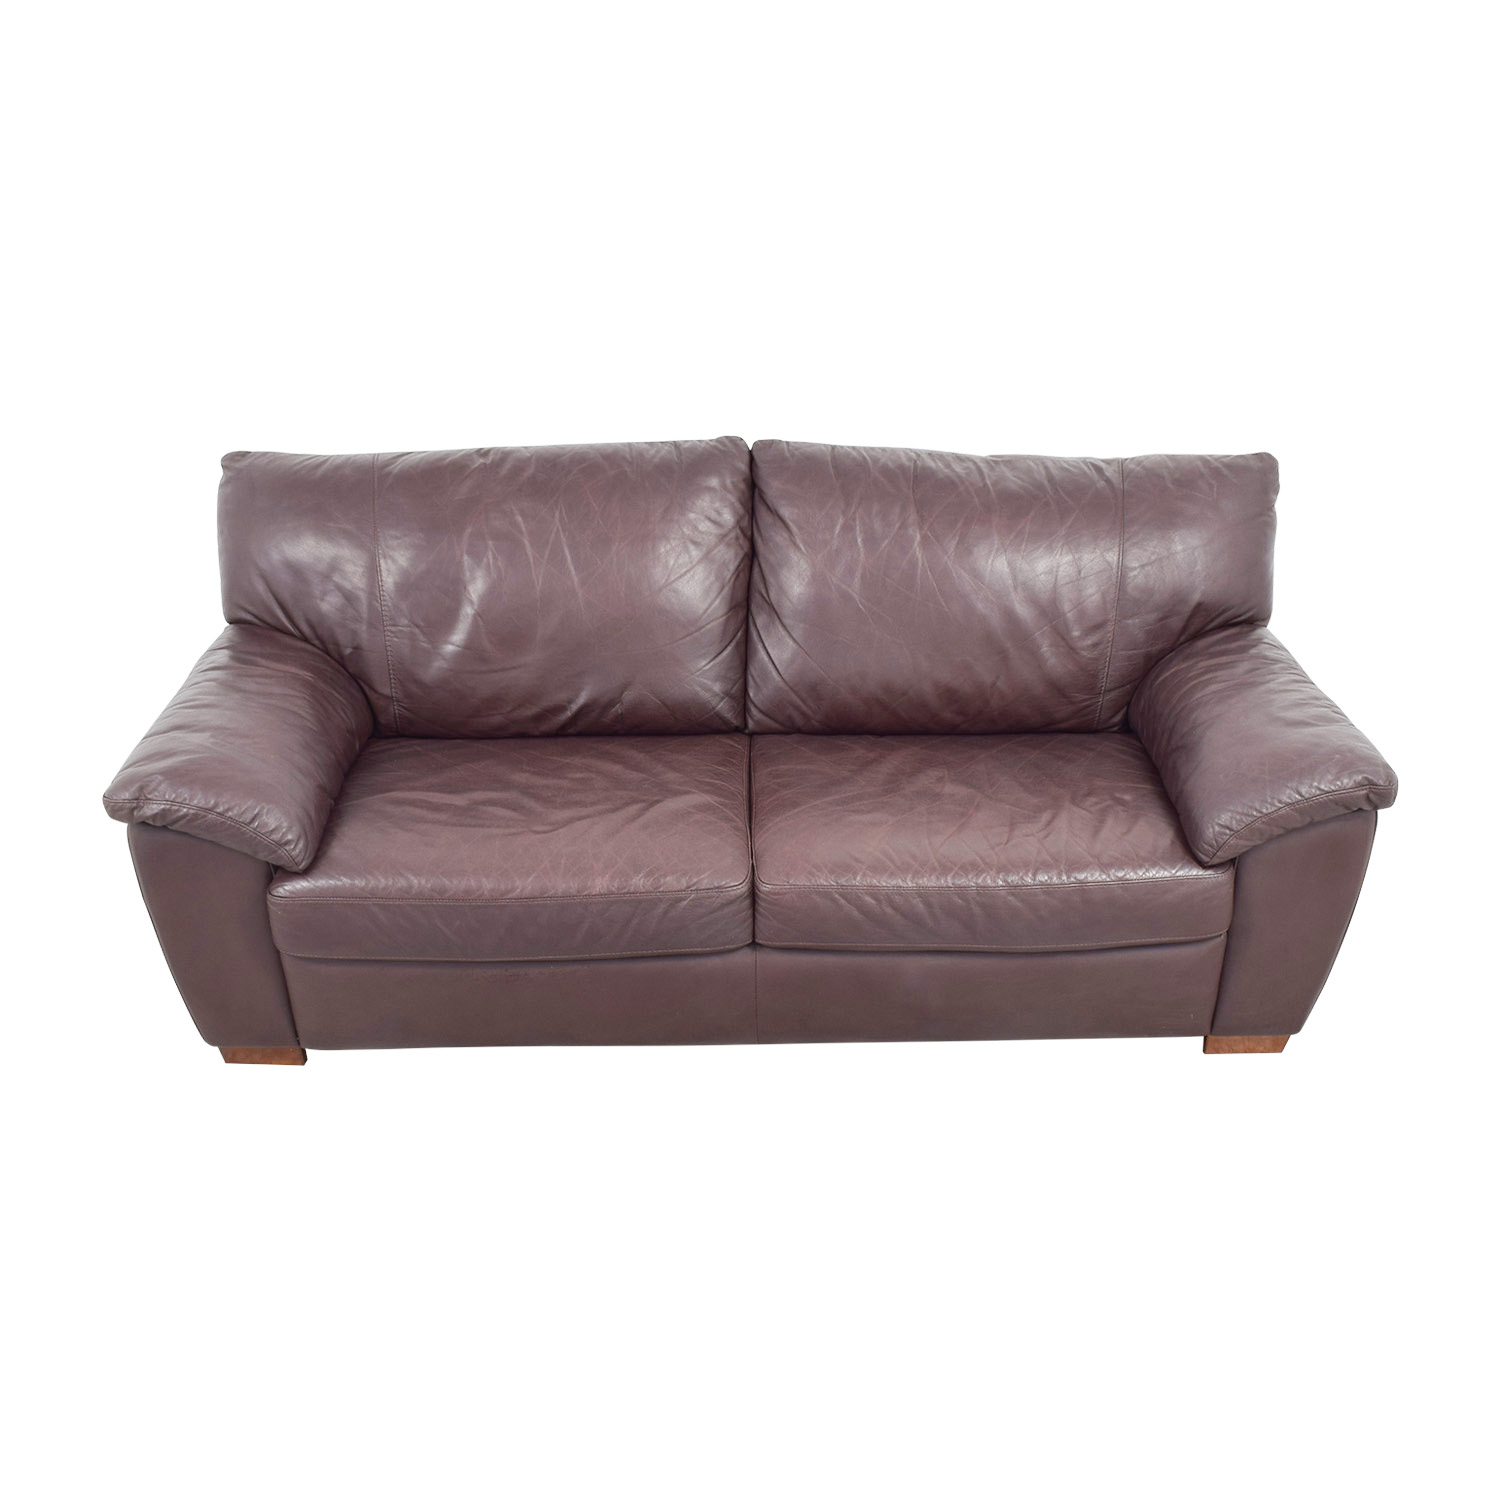 Ikea Vreta Brown Leather Two Cushion Sofa Sofas